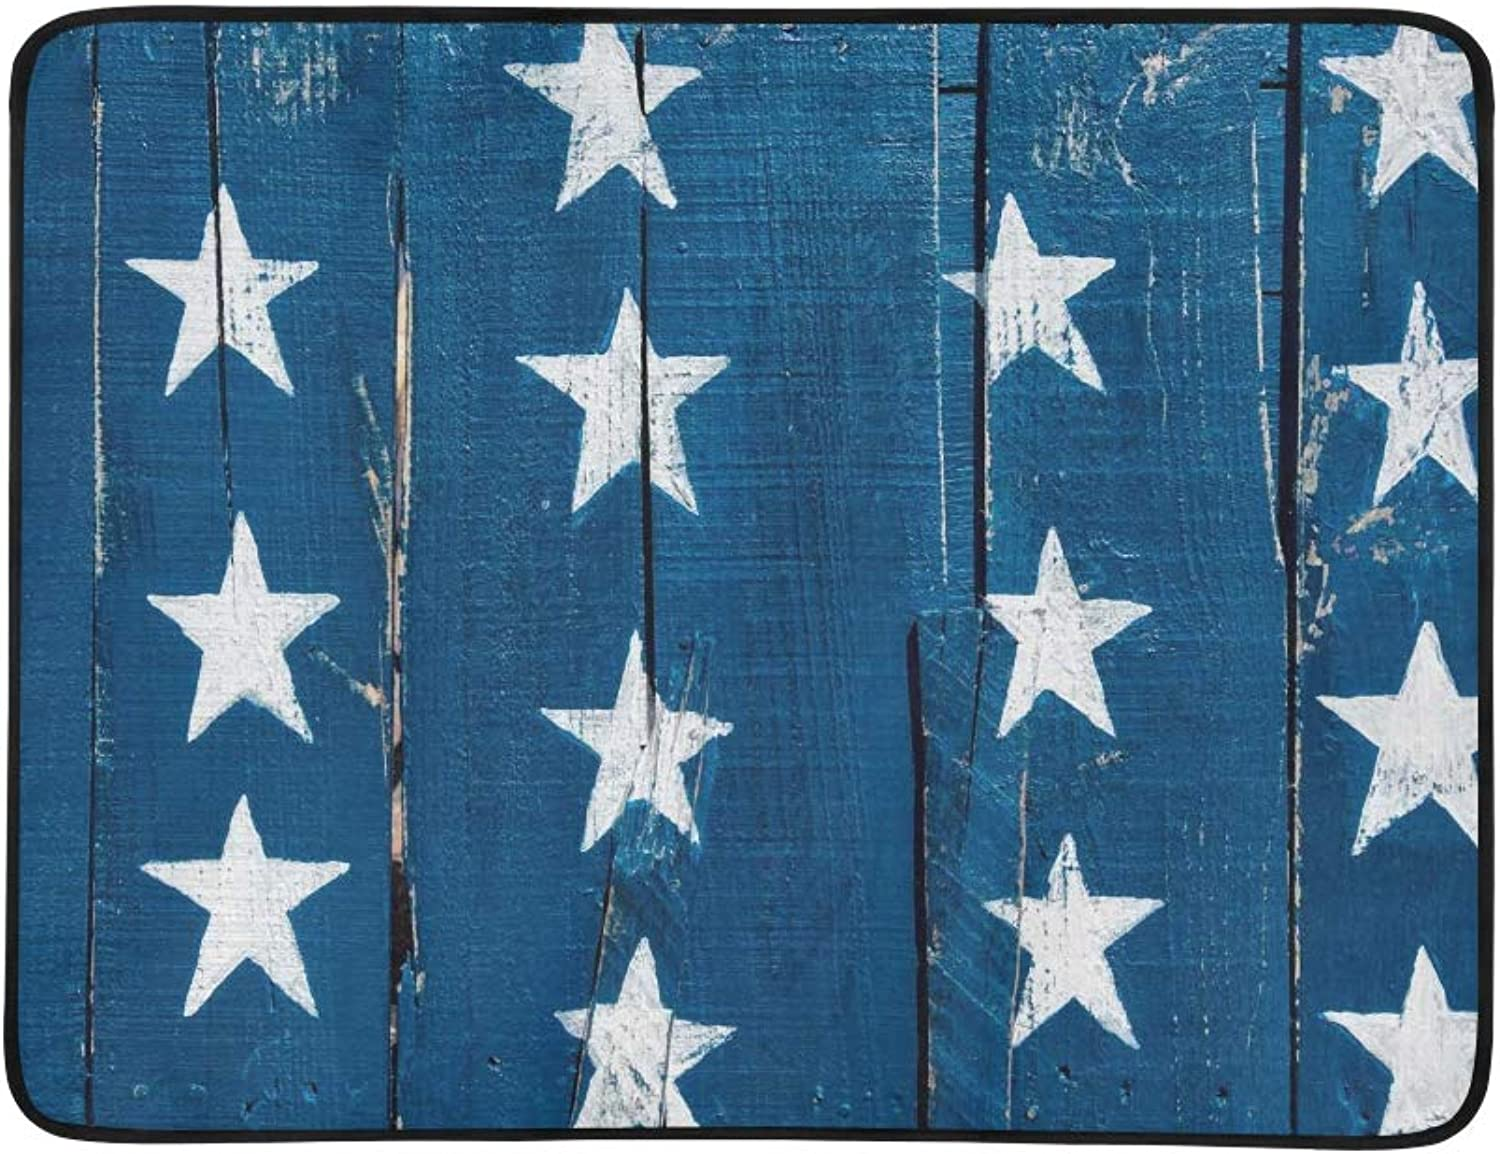 White Stars On blueee Painted On Planks of Rustic Re Pattern Portable and Foldable Blanket Mat 60x78 Inch Handy Mat for Camping Picnic Beach Indoor Outdoor Travel